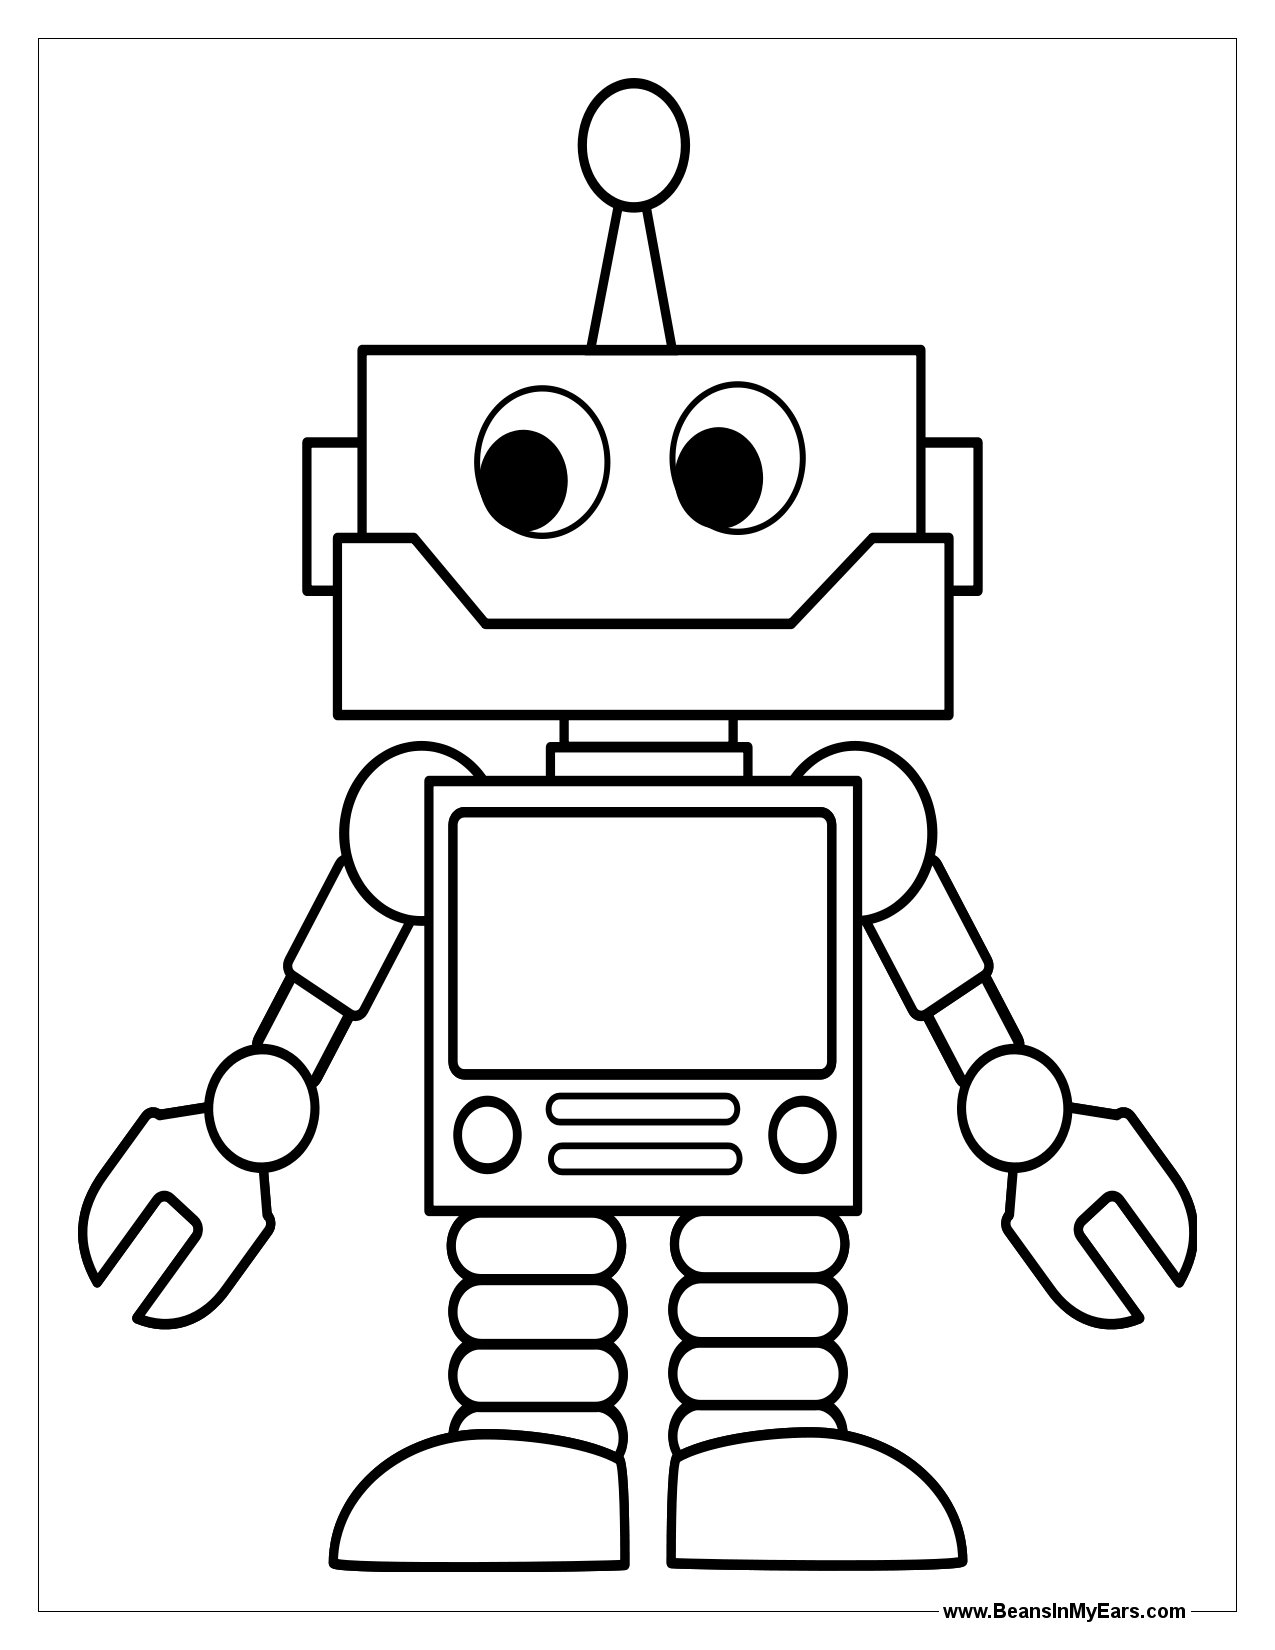 robot colouring pictures free printable robot coloring pages for kids cool2bkids pictures colouring robot 1 1